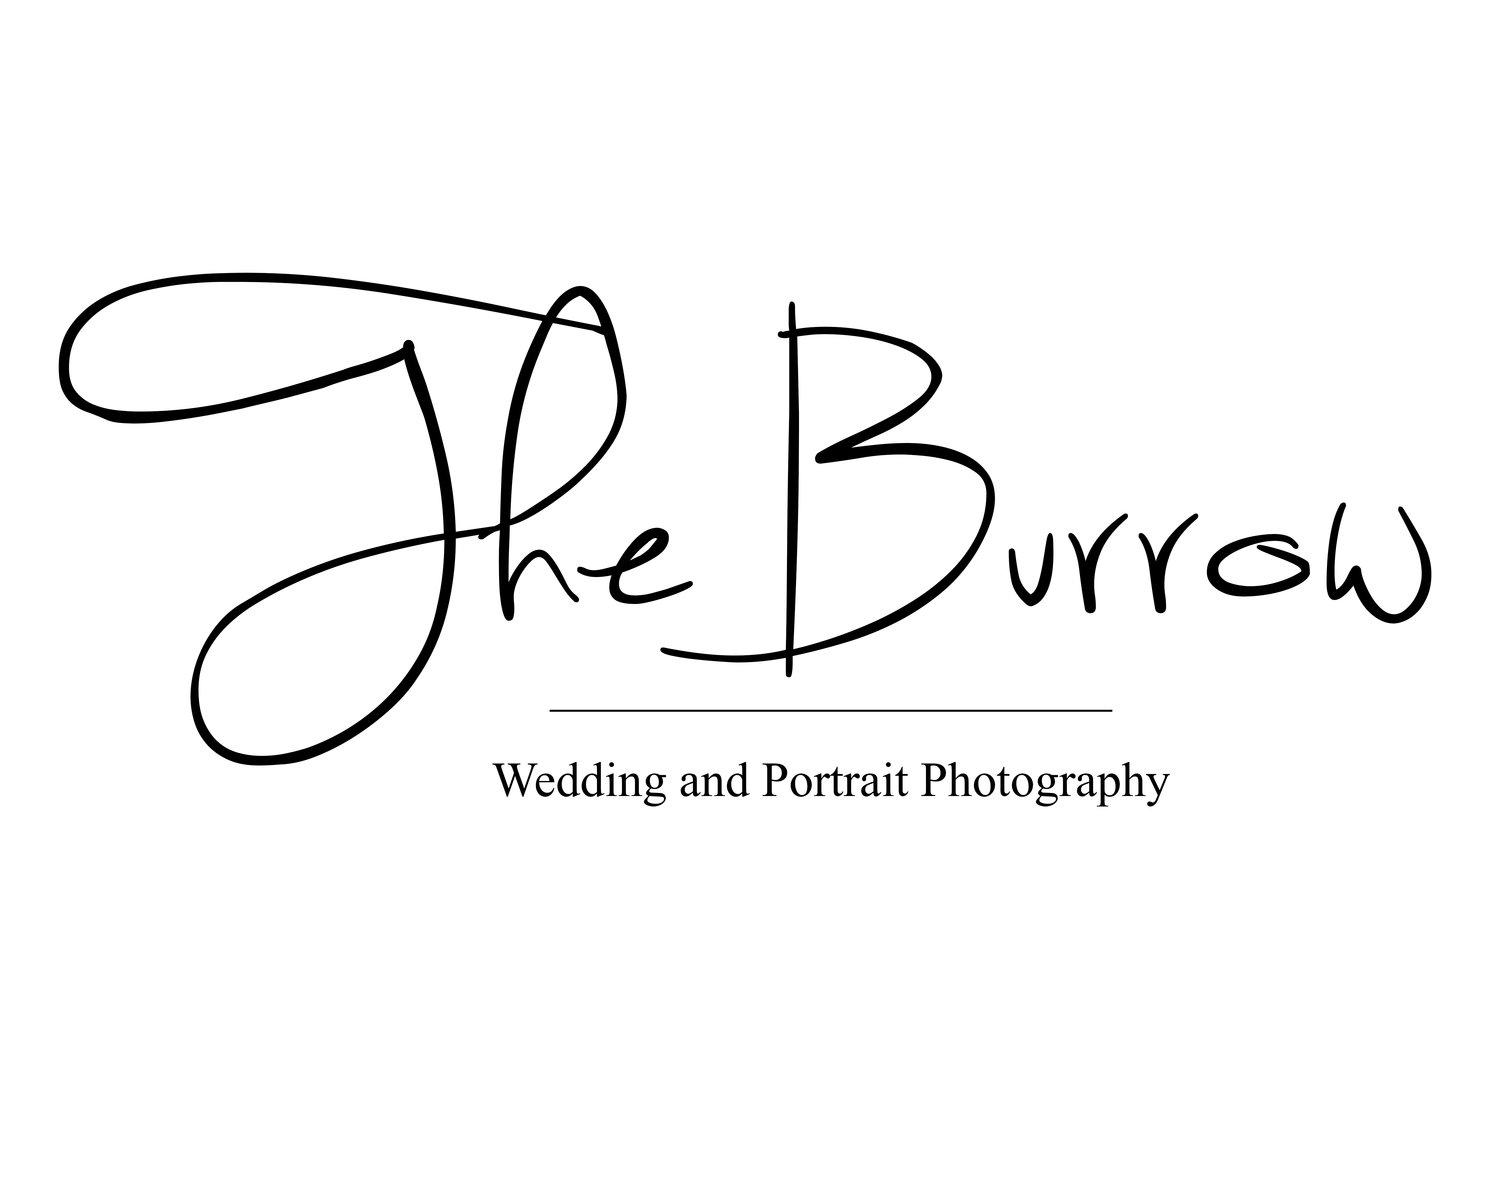 The Burrow: Wedding and Portrait Photography